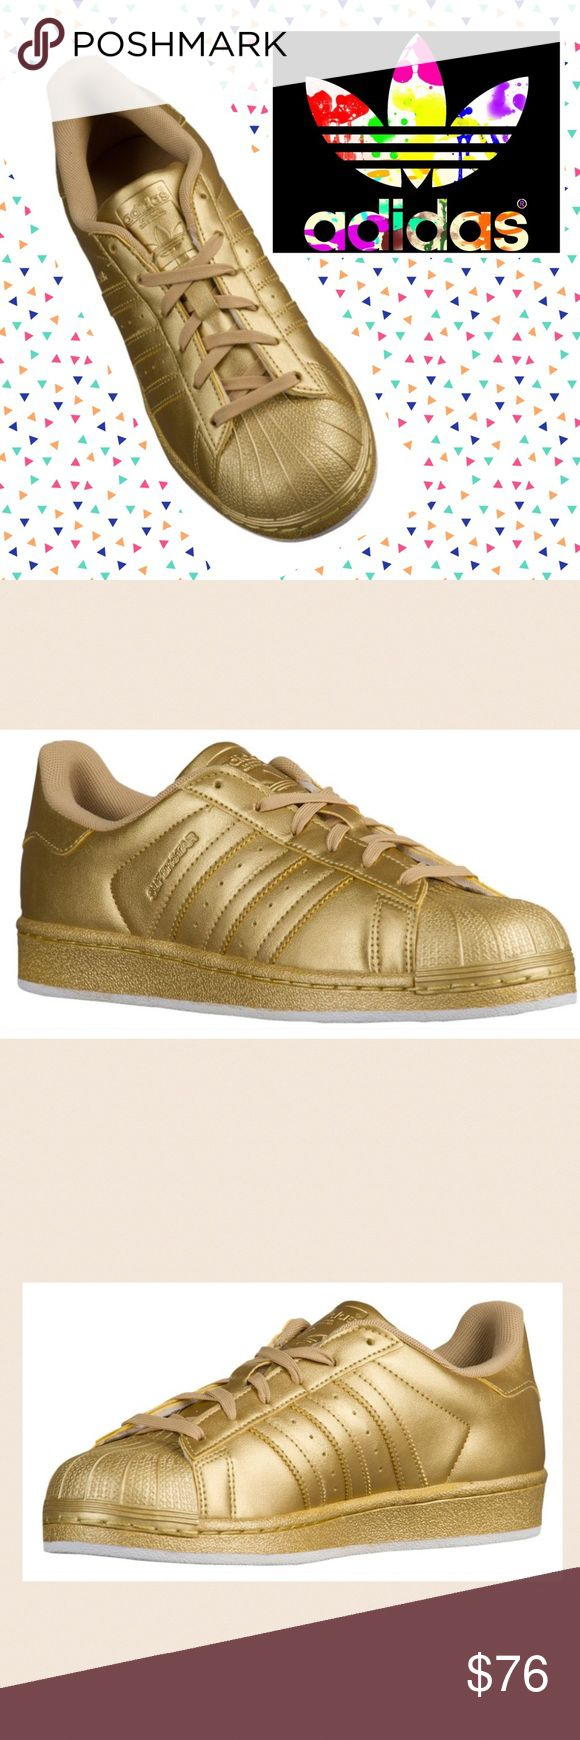 Classic leather Adidas Super Star in Gold OMG, these are awesome!! If you are a size 7, you're in luck! Gold metallic leather uppers with the classic Adidas 3 stripes. Rubber soles. Brand new, never worn. Size 7. Non-smoking home. Adidas Shoes Athletic Shoes